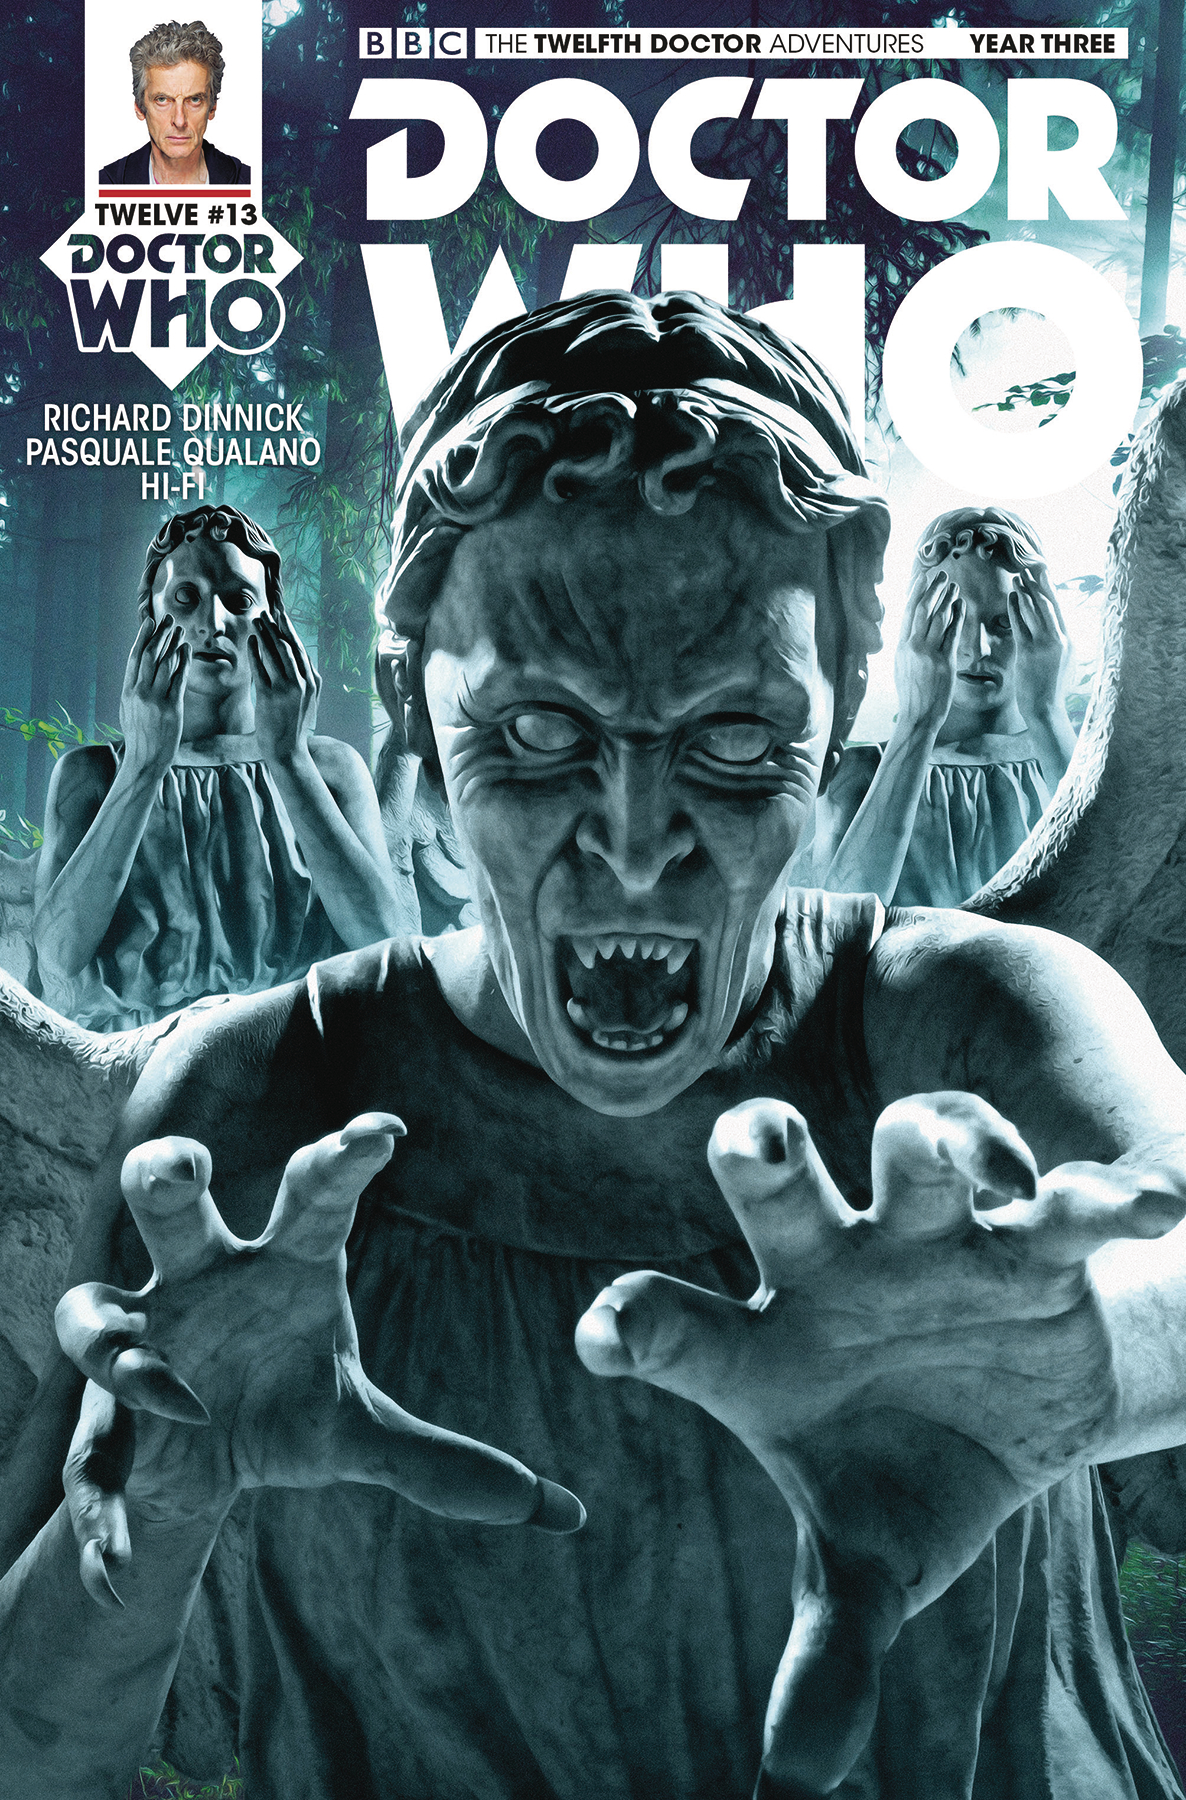 DOCTOR WHO 12TH YEAR THREE #13 CVR B PHOTO